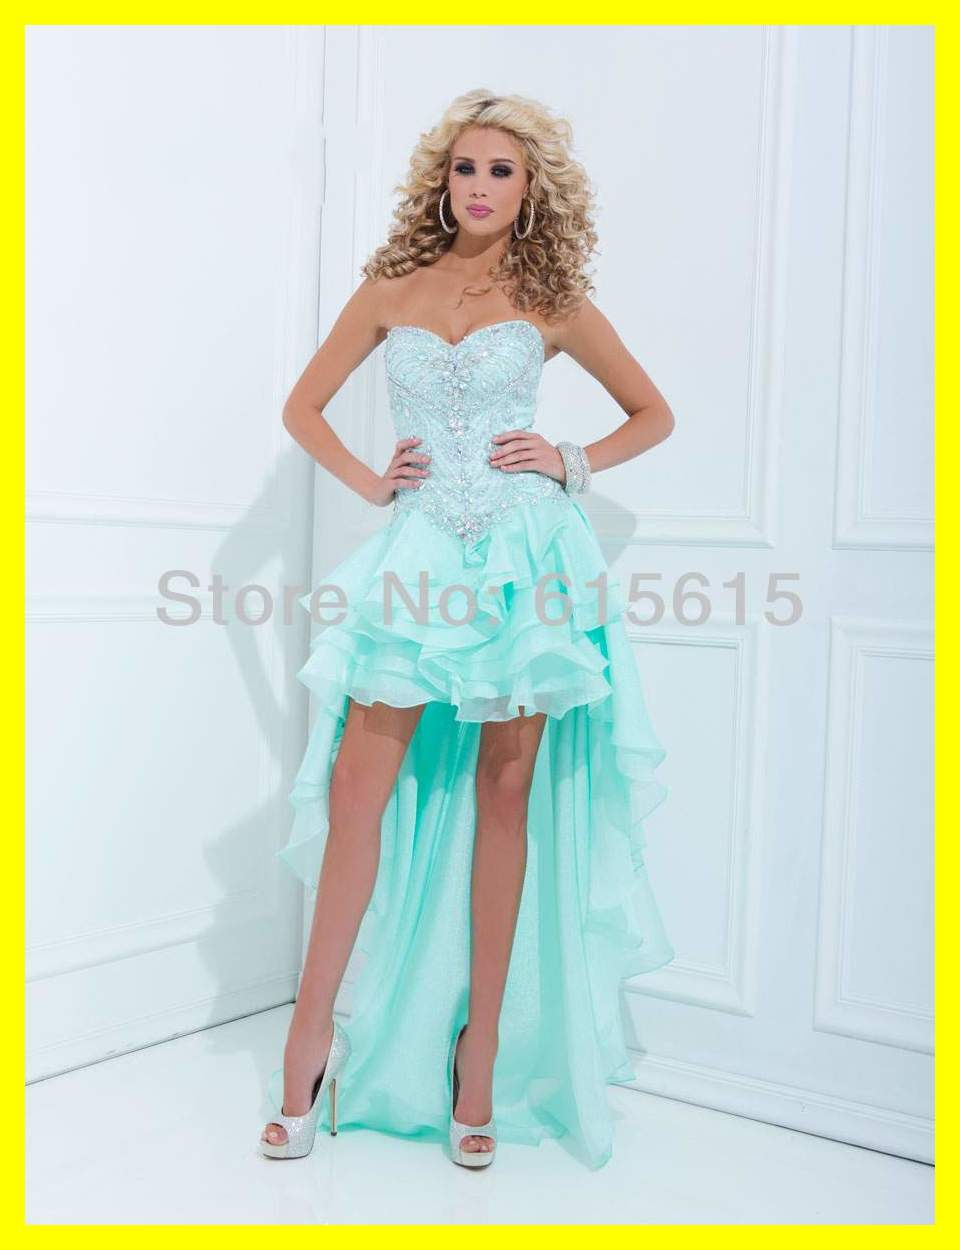 Stores That Buy Prom Dresses - Prom Dresses Vicky